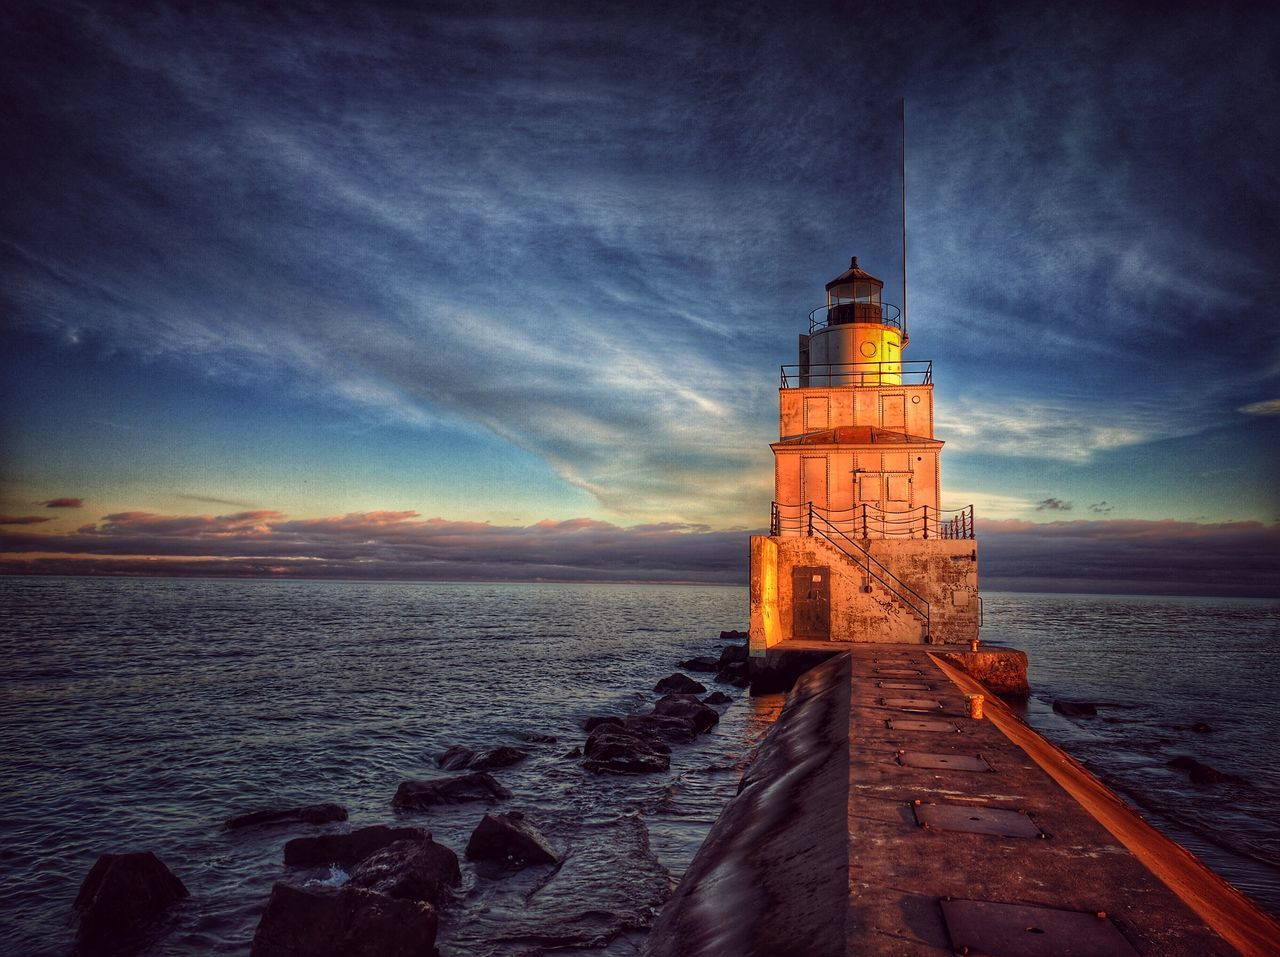 Sky Lighthouse Architecture Tower Building Exterior Sea Built Structure No People Scenics Illuminated Night Water Sunset Outdoors Nature Coastline Dramatic Sky Wisconsin Lake Michigan Lakeshore